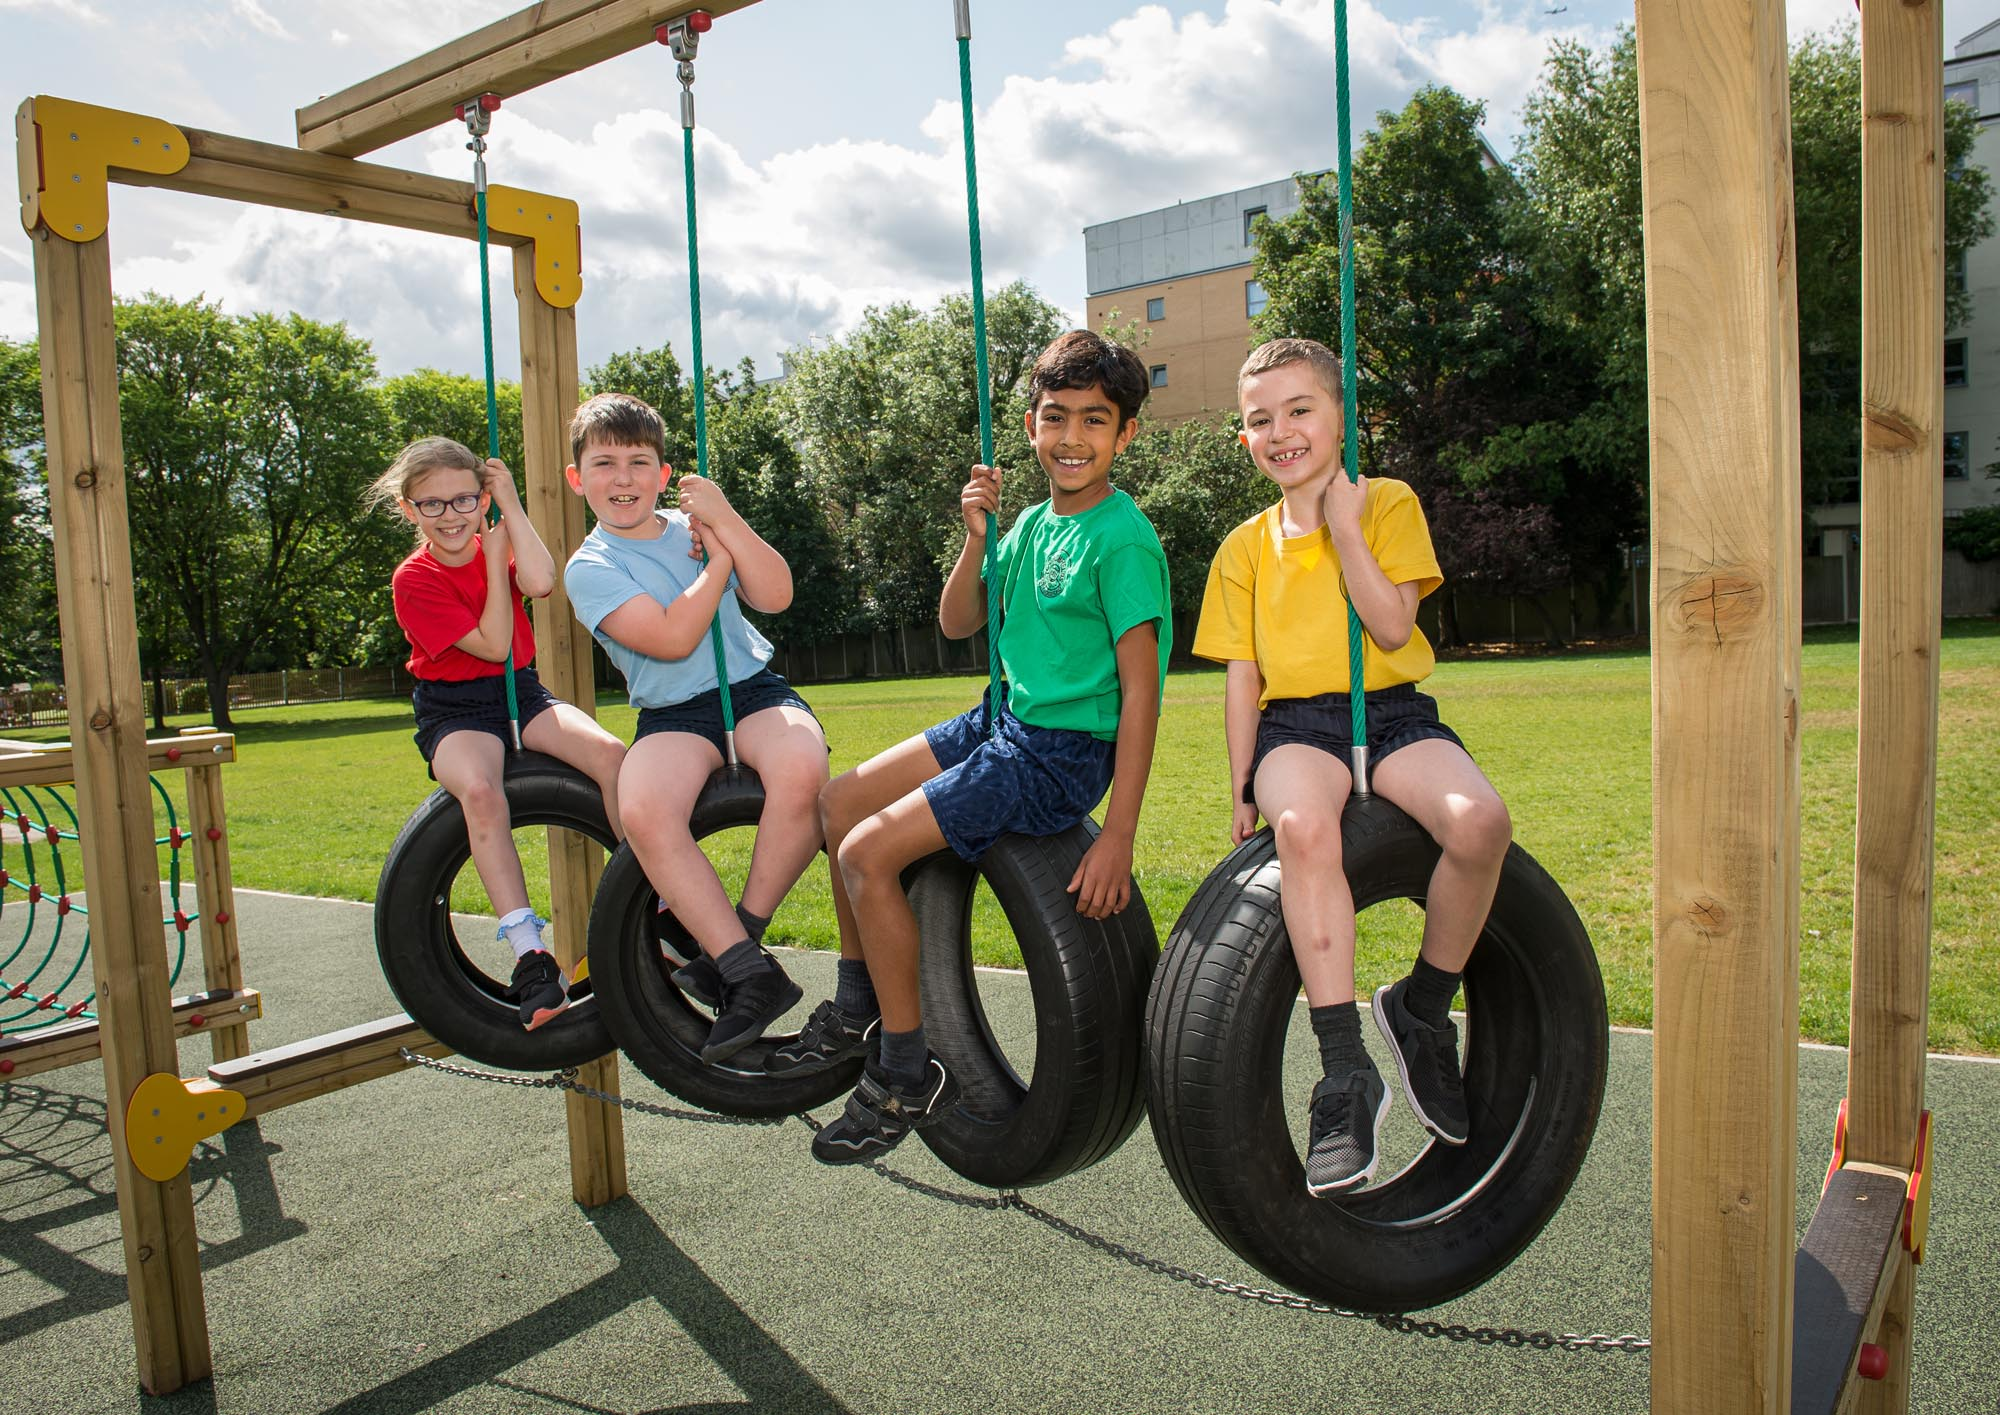 Four children playing on tyres